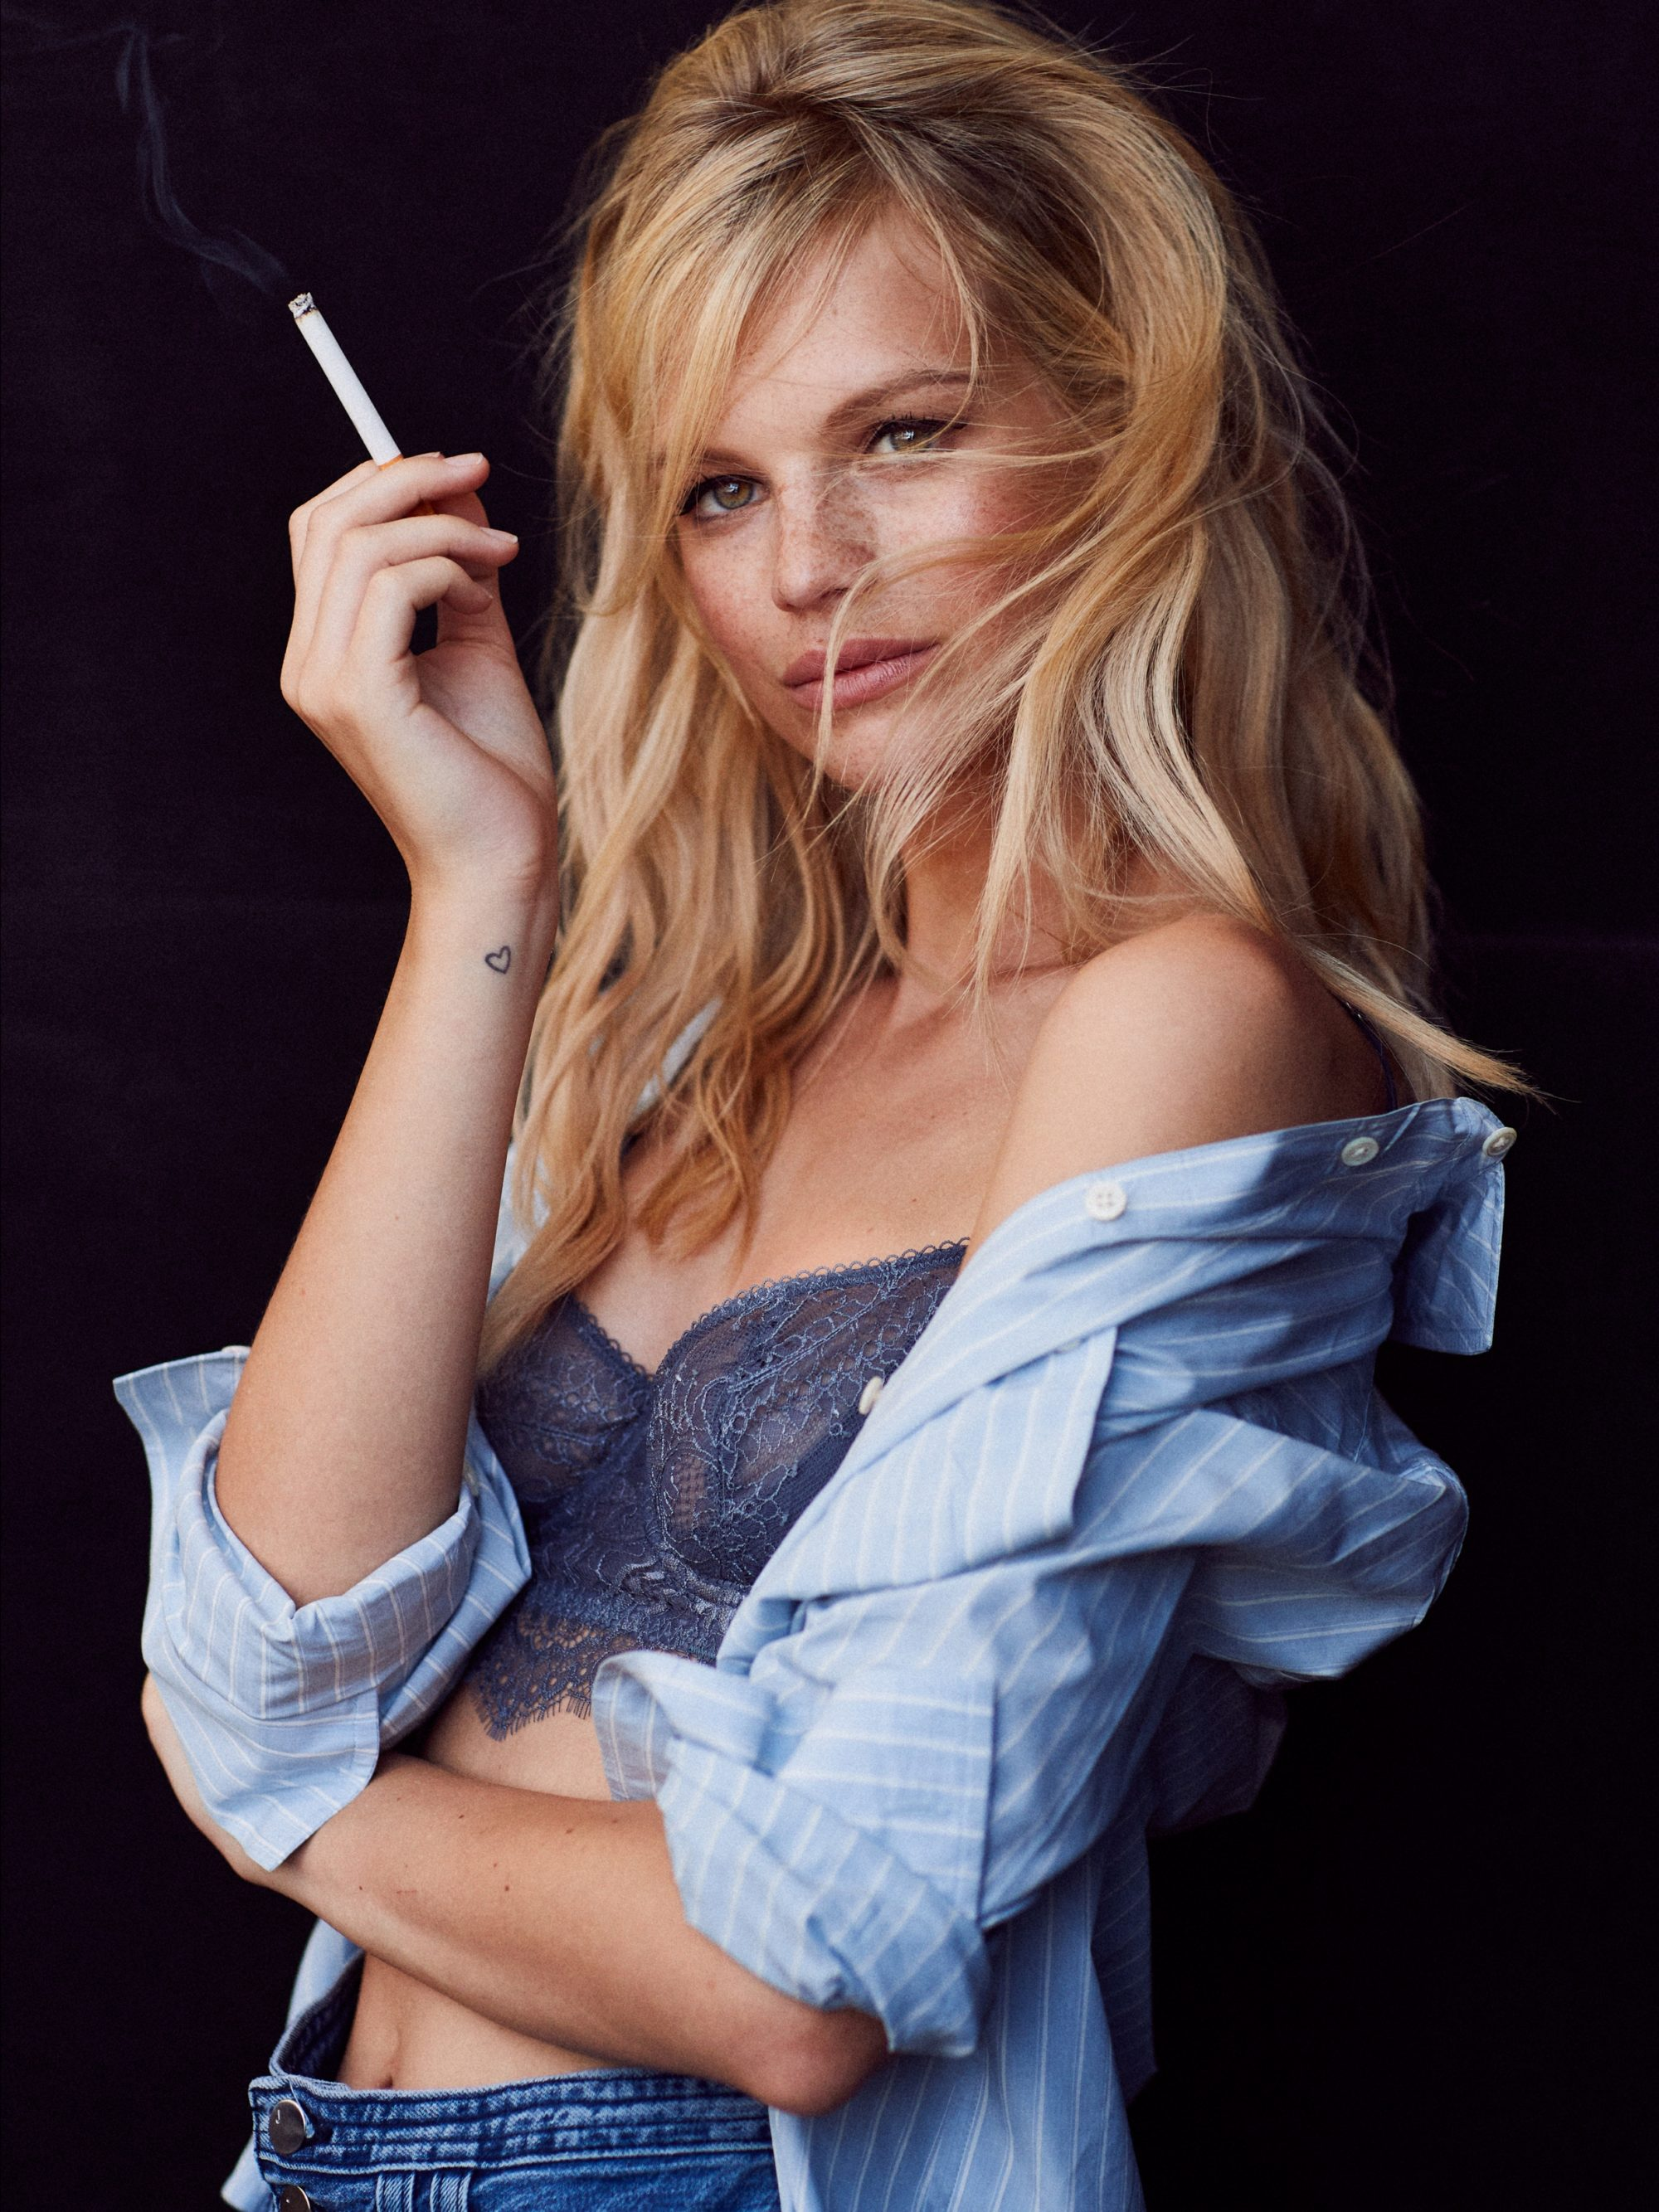 190625 Marian Sell Nadine Leopold 01 A